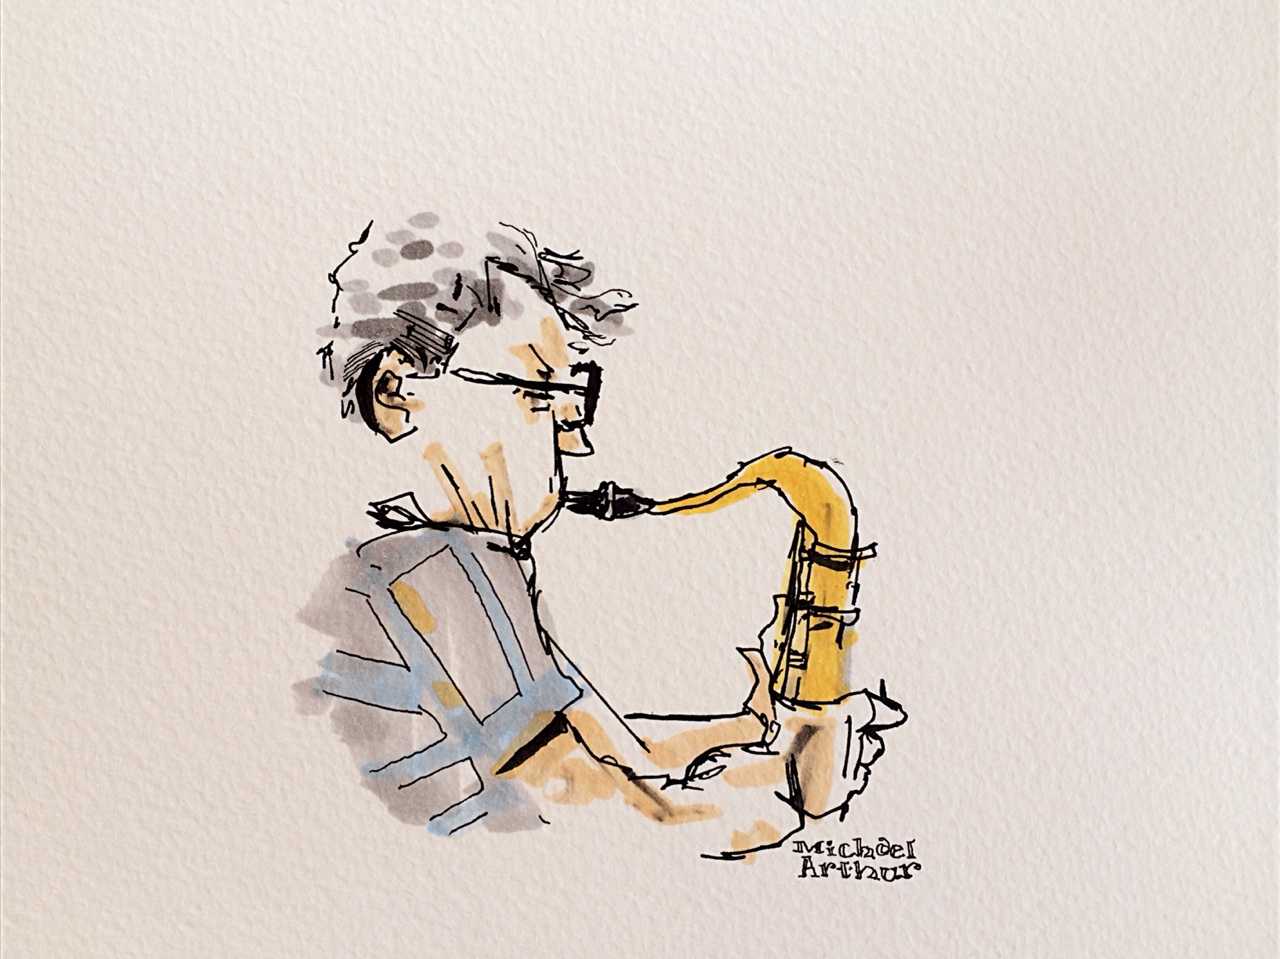 Downtown sax in Lawrence, Kansas. I'm here for the next few days, performing live drawings tonight with a jazz band and choir in Langston Hughes old church…